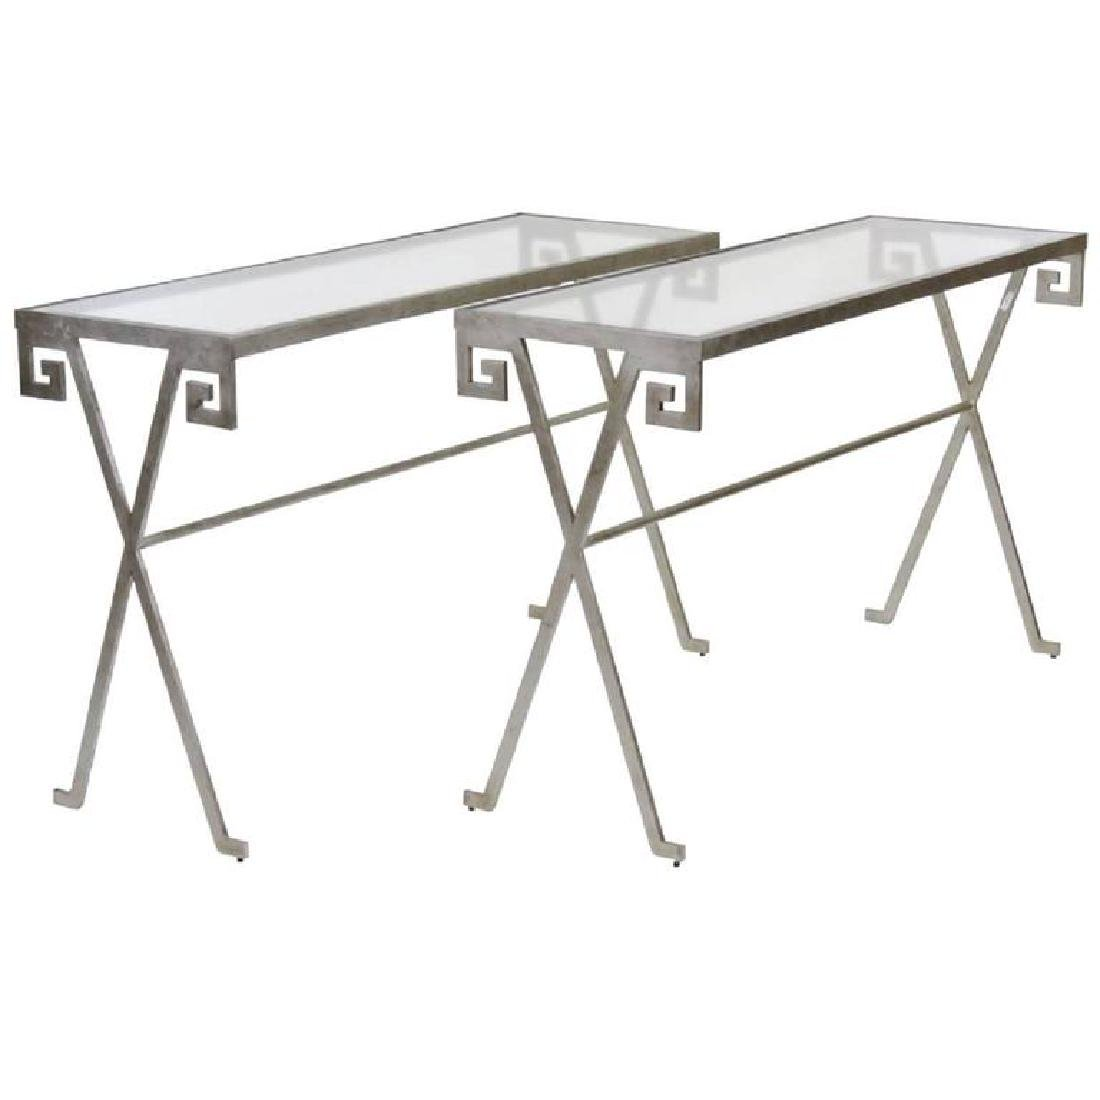 PAIR JEAN MICHELE FRANK STYLE CONSOLE TABLES